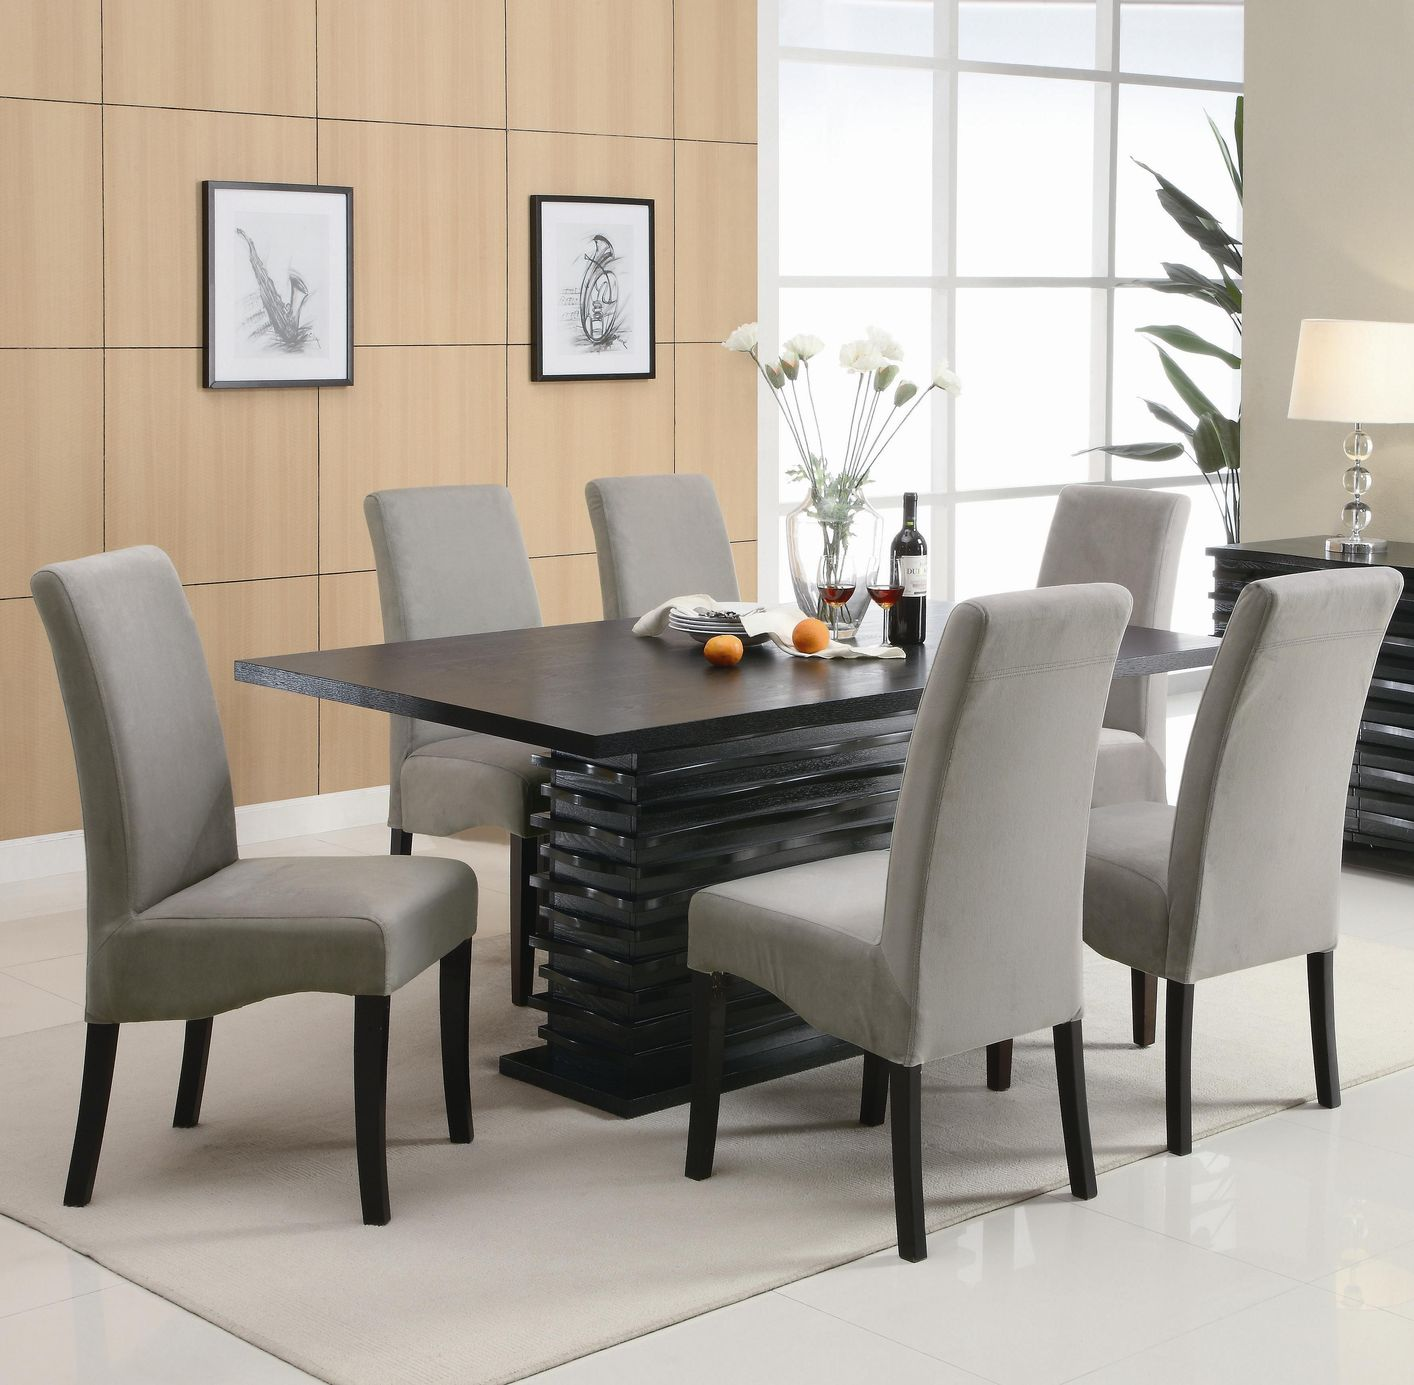 Black Dining Room Table And Chairs: Coaster Stanton 102061 102062 Black Wood Dining Table Set